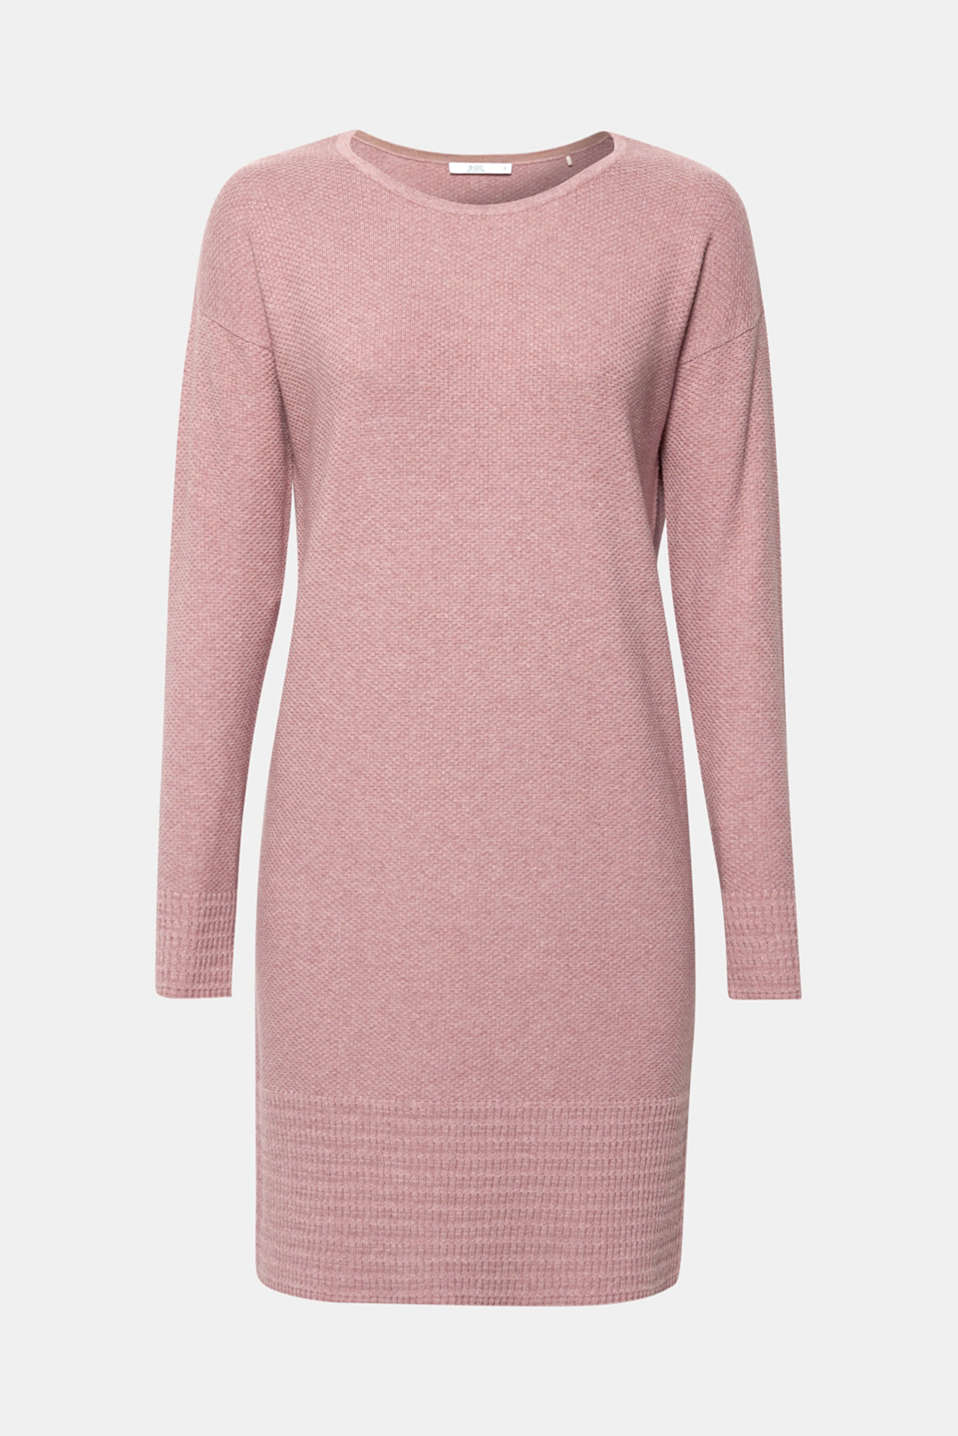 Textured knitted dress with organic cotton, MAUVE 5, detail image number 5